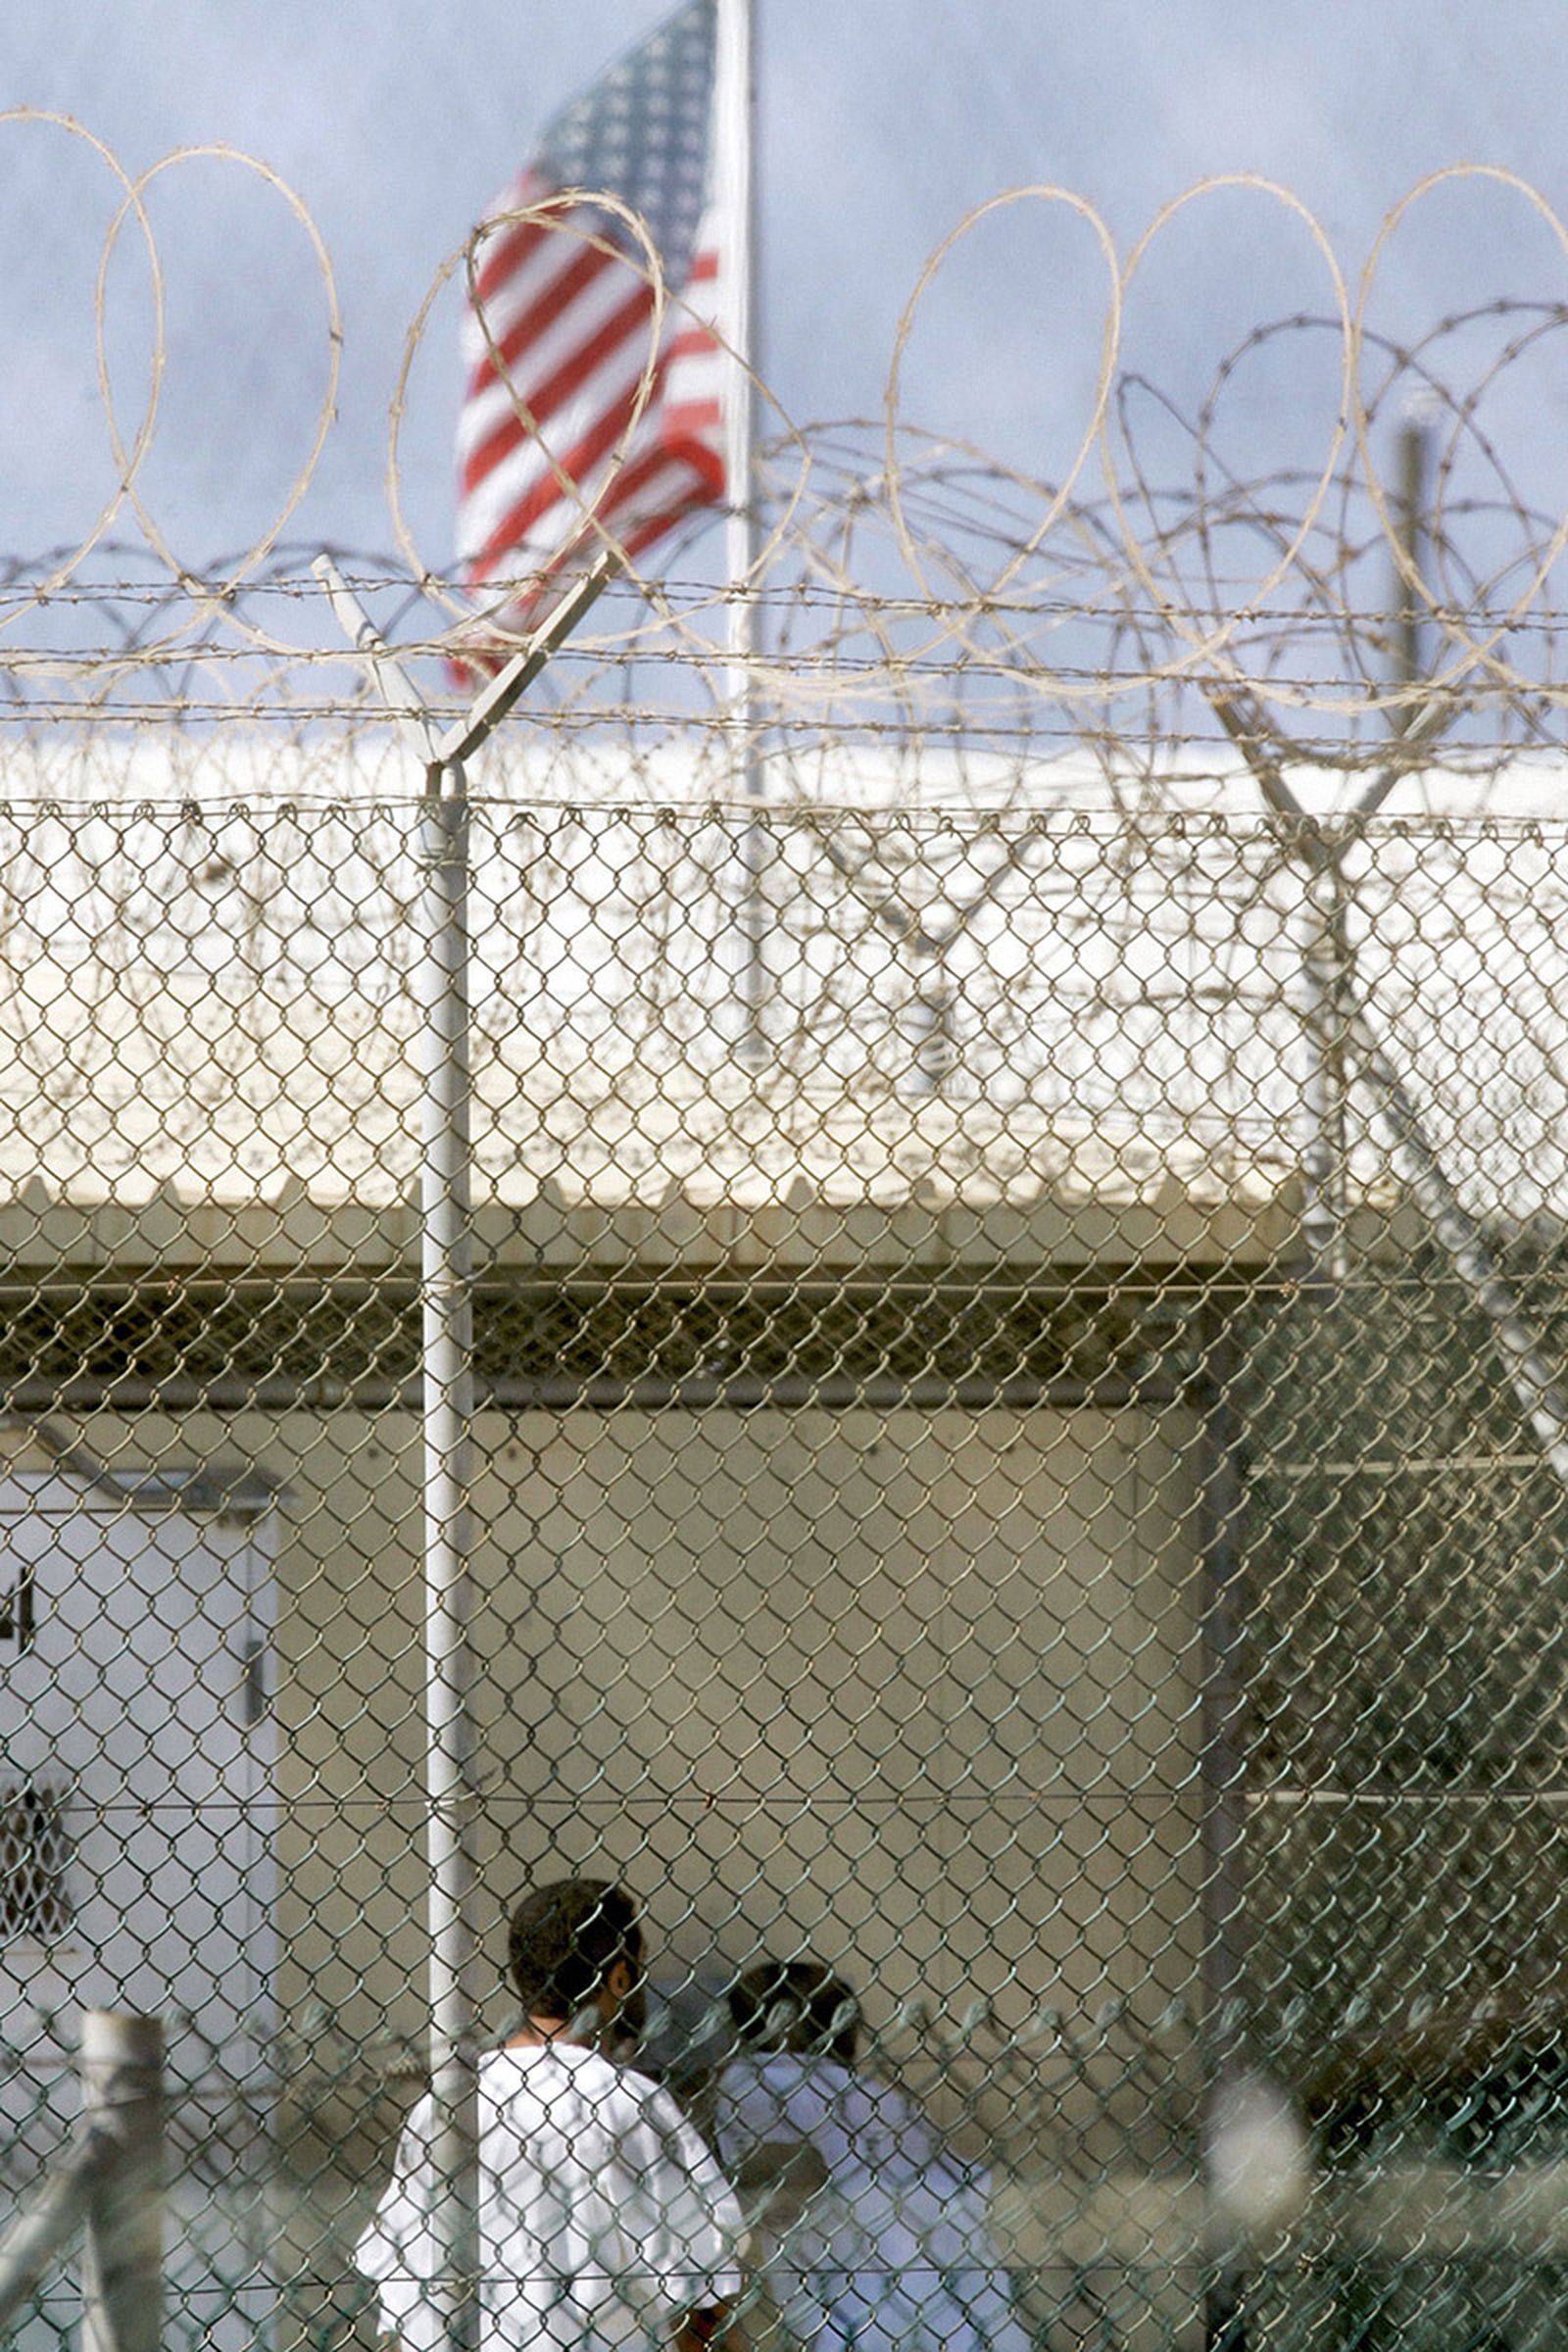 americas-need-prison-reform-long-overdue-01